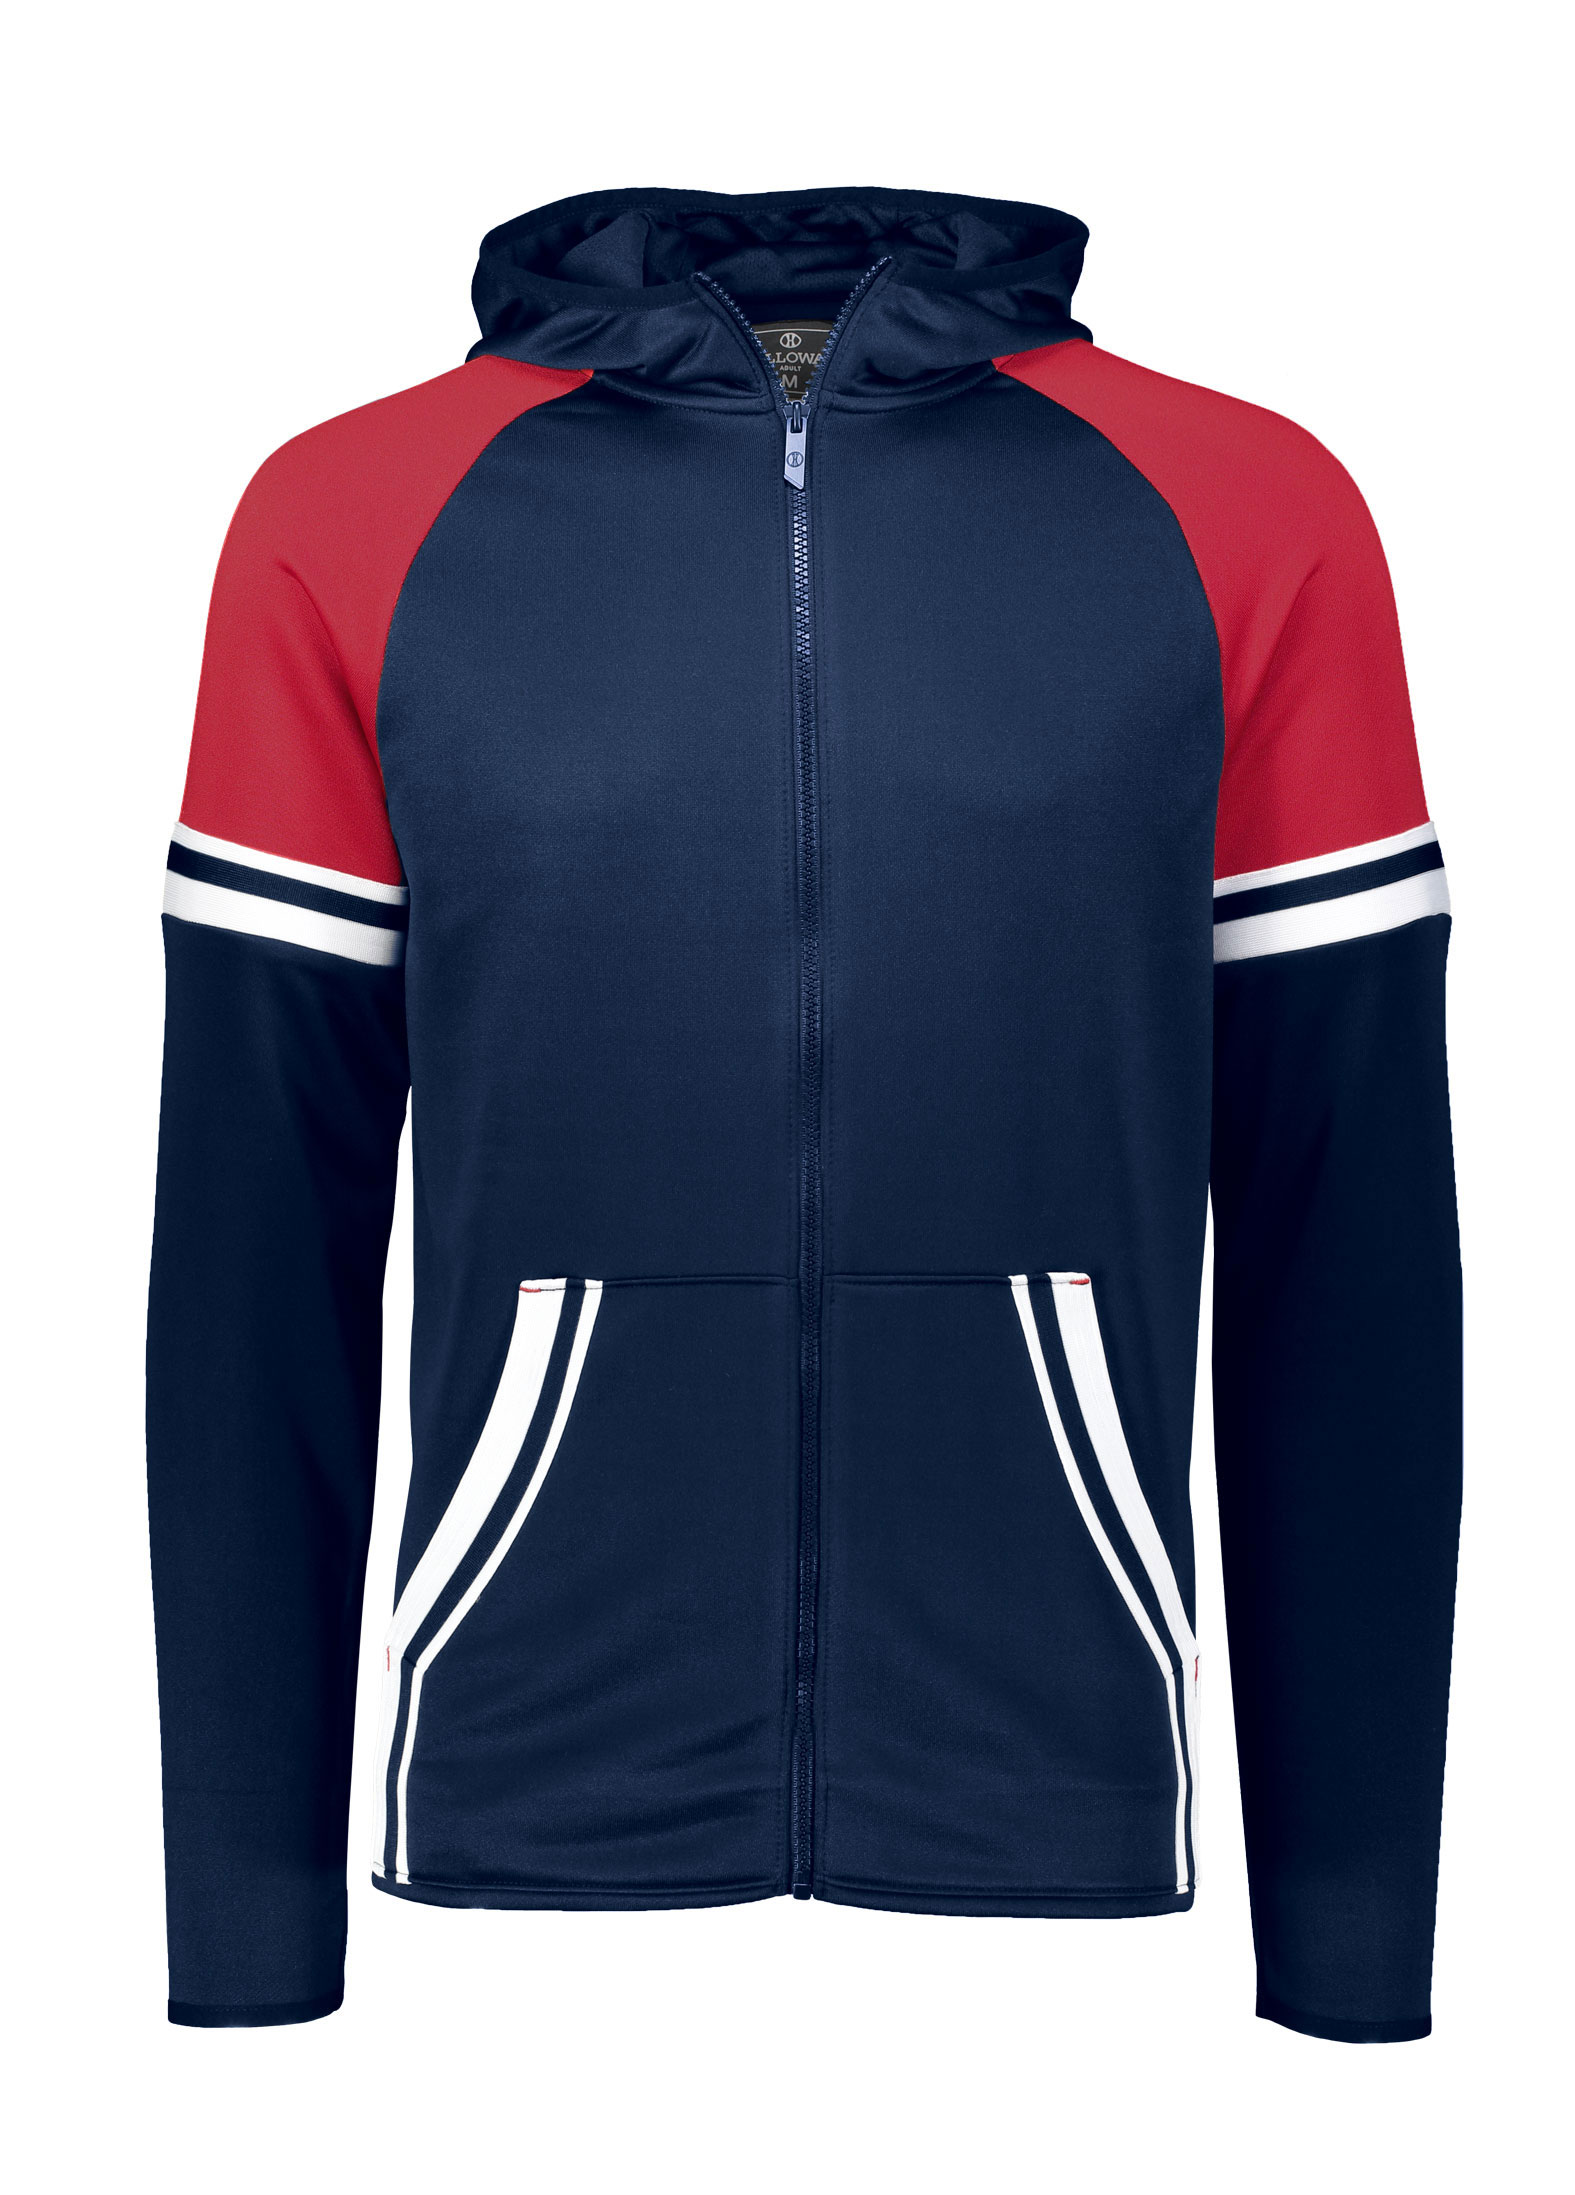 Holloway Youth Retro Grade Jacket